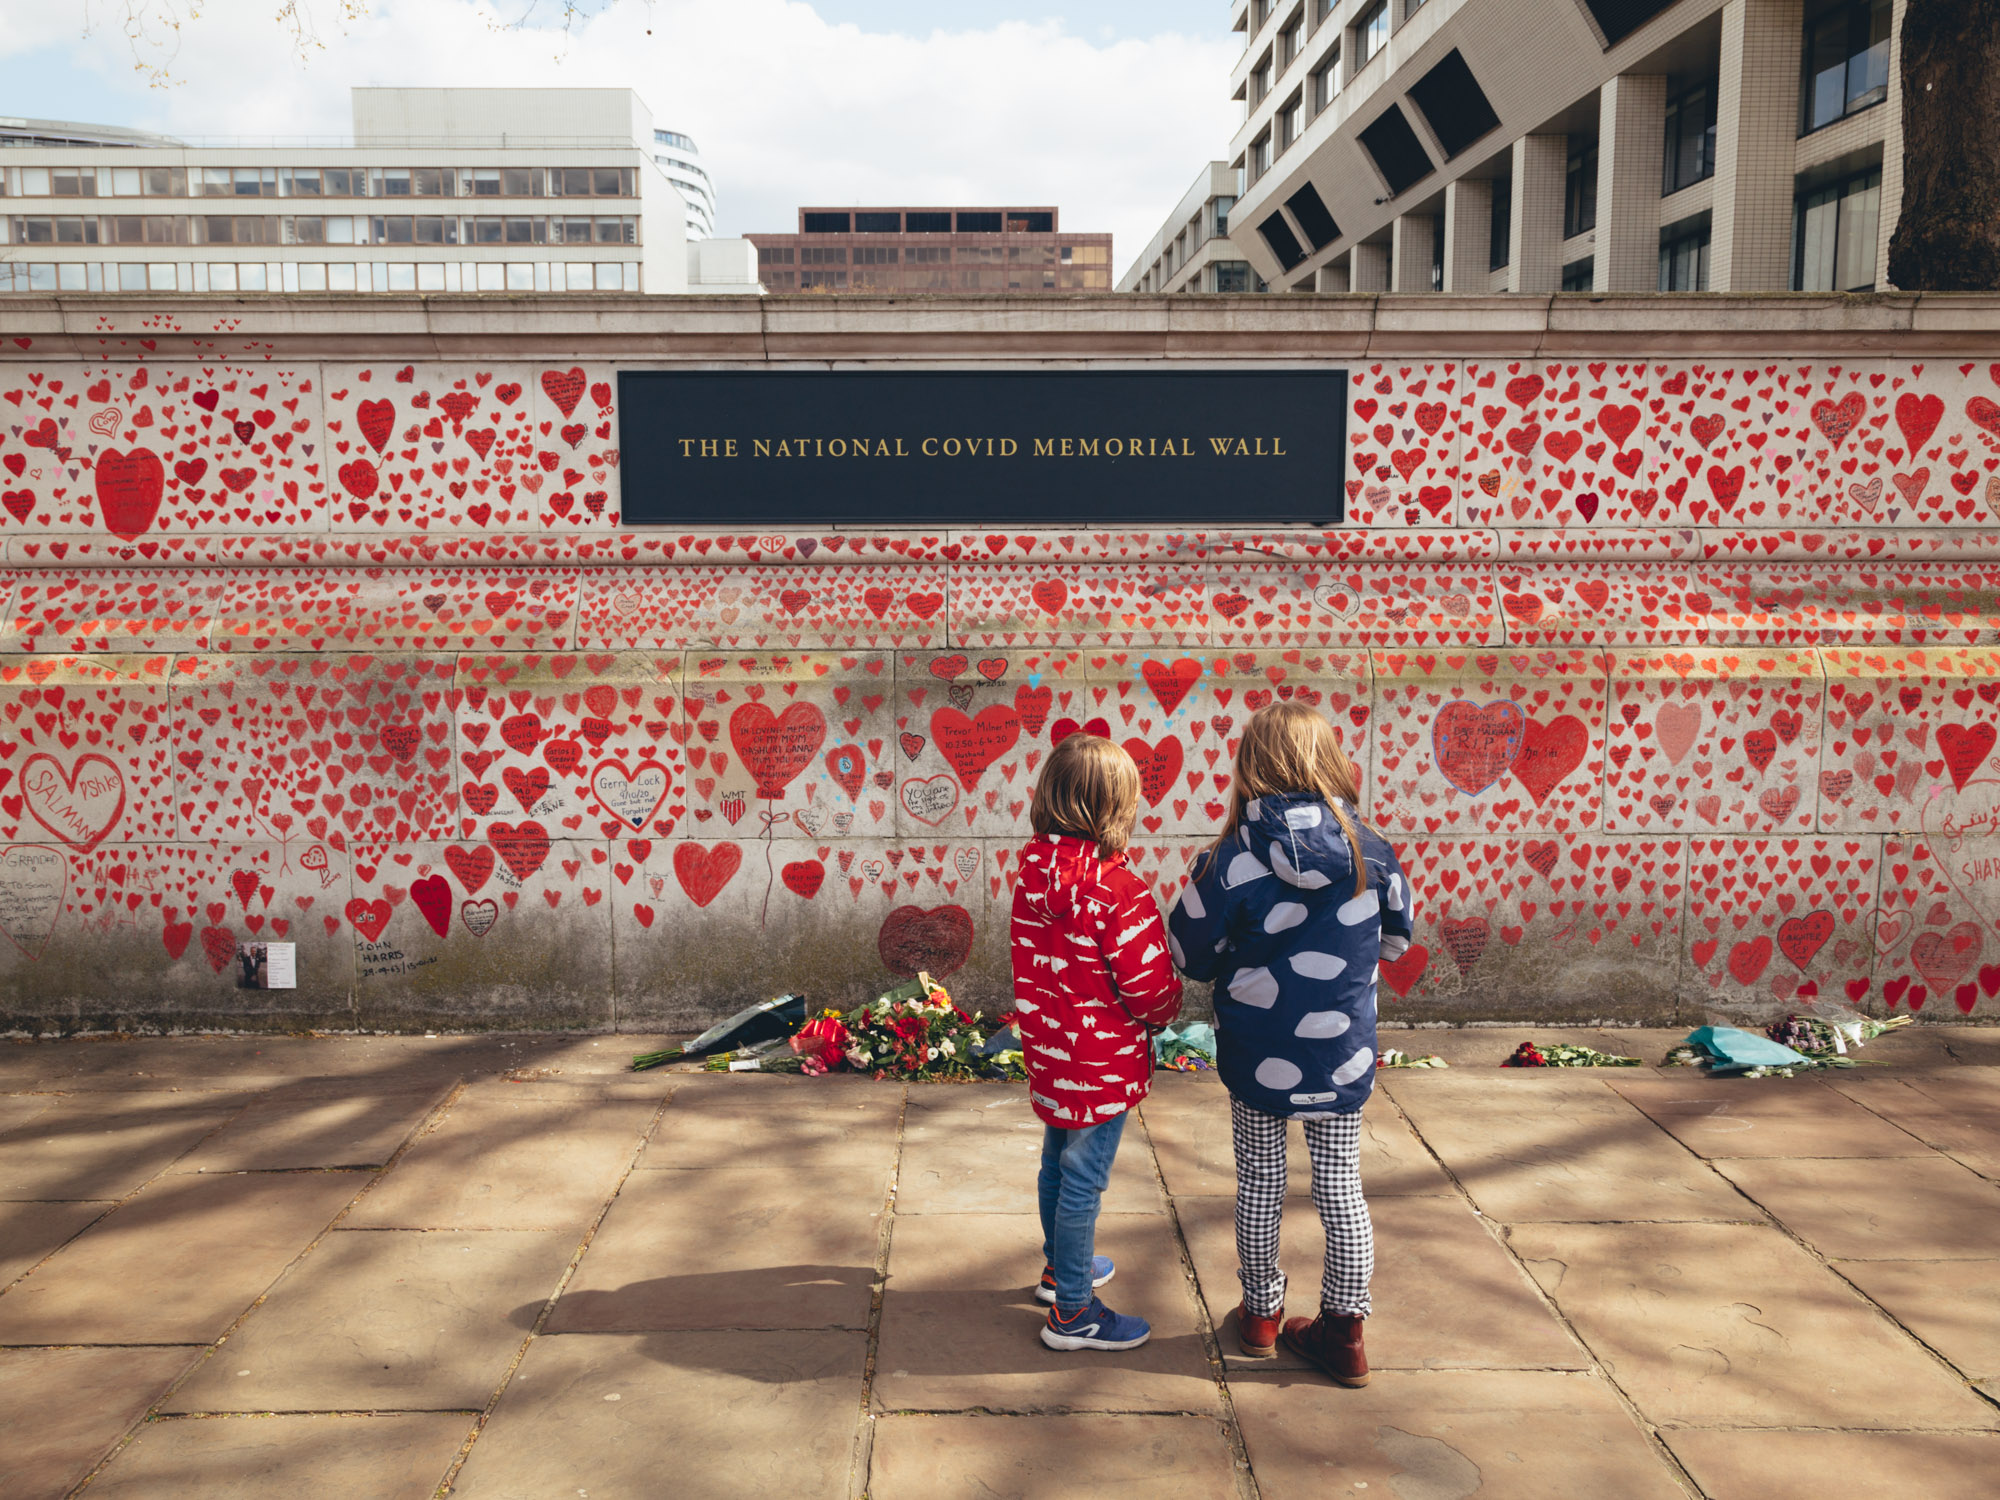 150,000 Hearts Representing Lives Lost to Coronavirus in the UK Line the COVID Memorial Wall in London